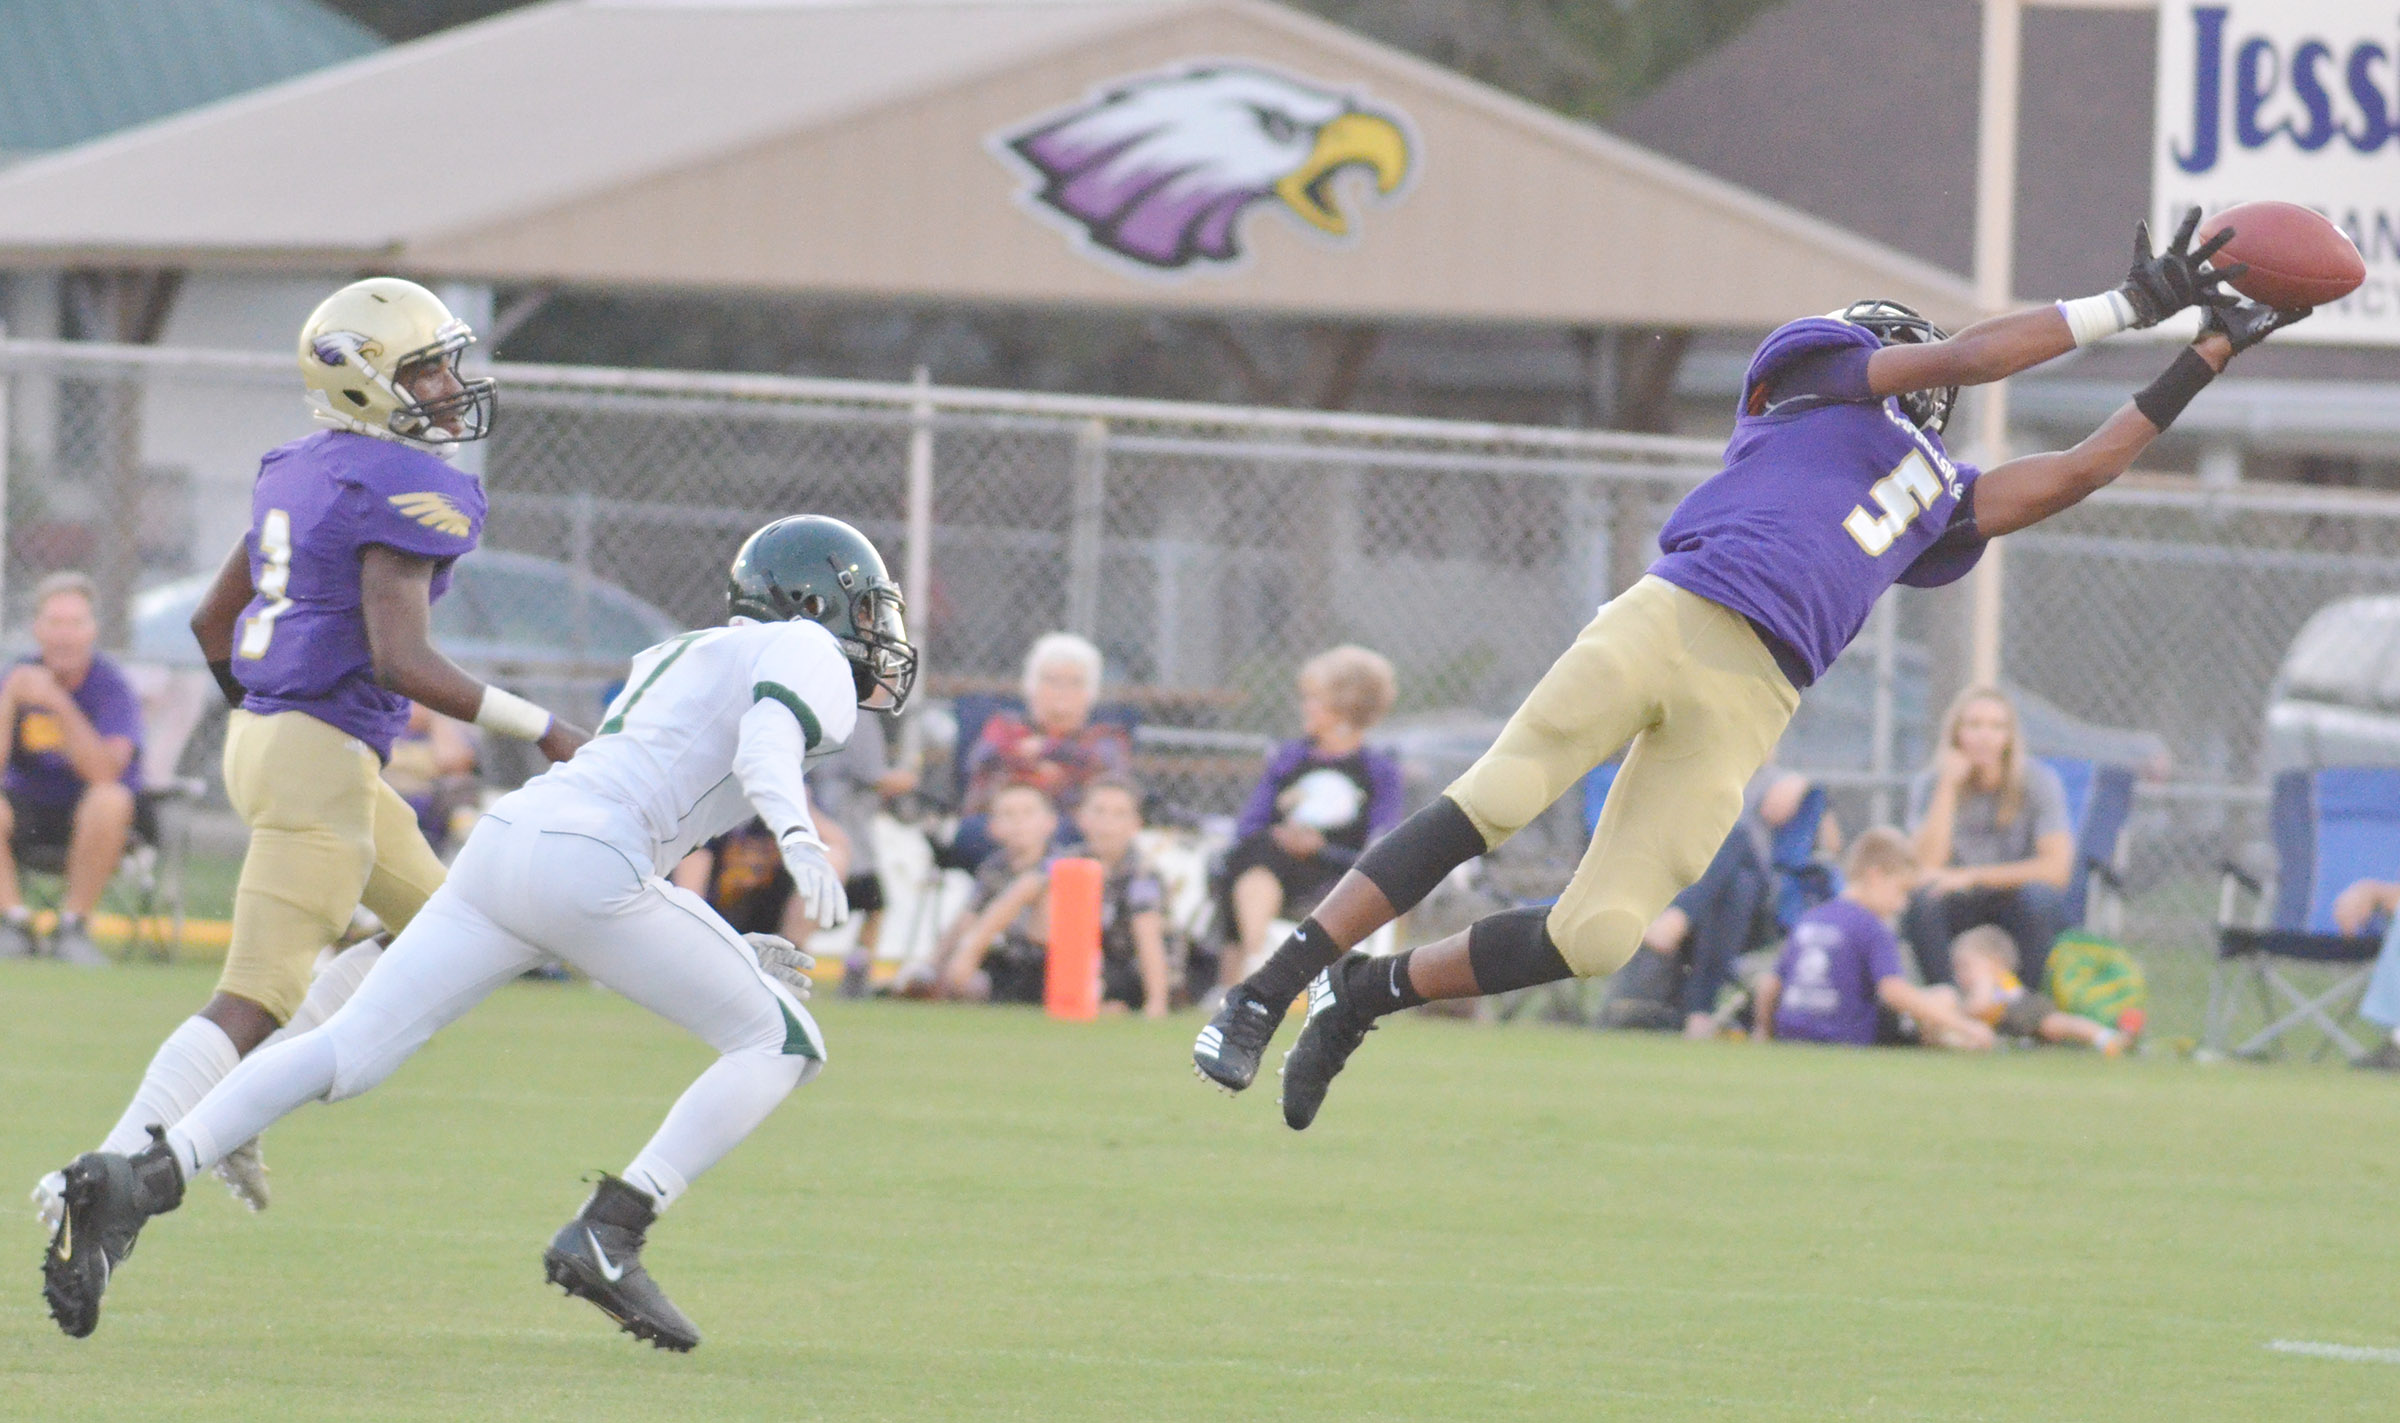 CHS freshman Reggie Thomas jumps for the ball.